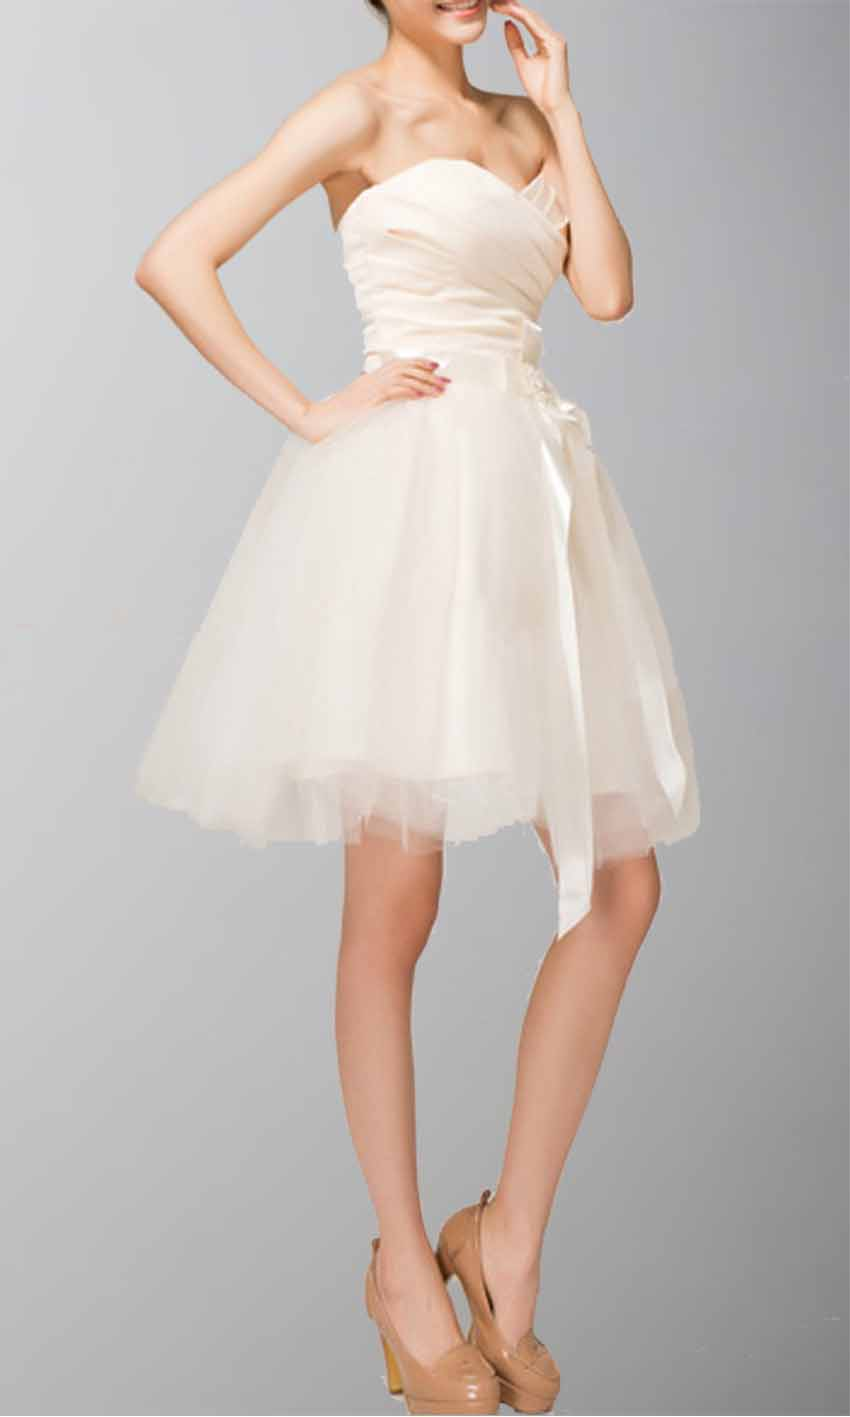 Affordable Sweetheart Neck Birthday Baby Doll Dresses KSP065 [KSP065] - £85.00 : Cheap Prom Dresses Uk, Bridesmaid Dresses, 2014 Prom & Evening Dresses, Look for cheap elegant prom dresses 2014, cocktail gowns, or dresses for special occasions? kissprom.co.uk offers various bridesmaid dresses, evening dress, free shipping to UK etc.